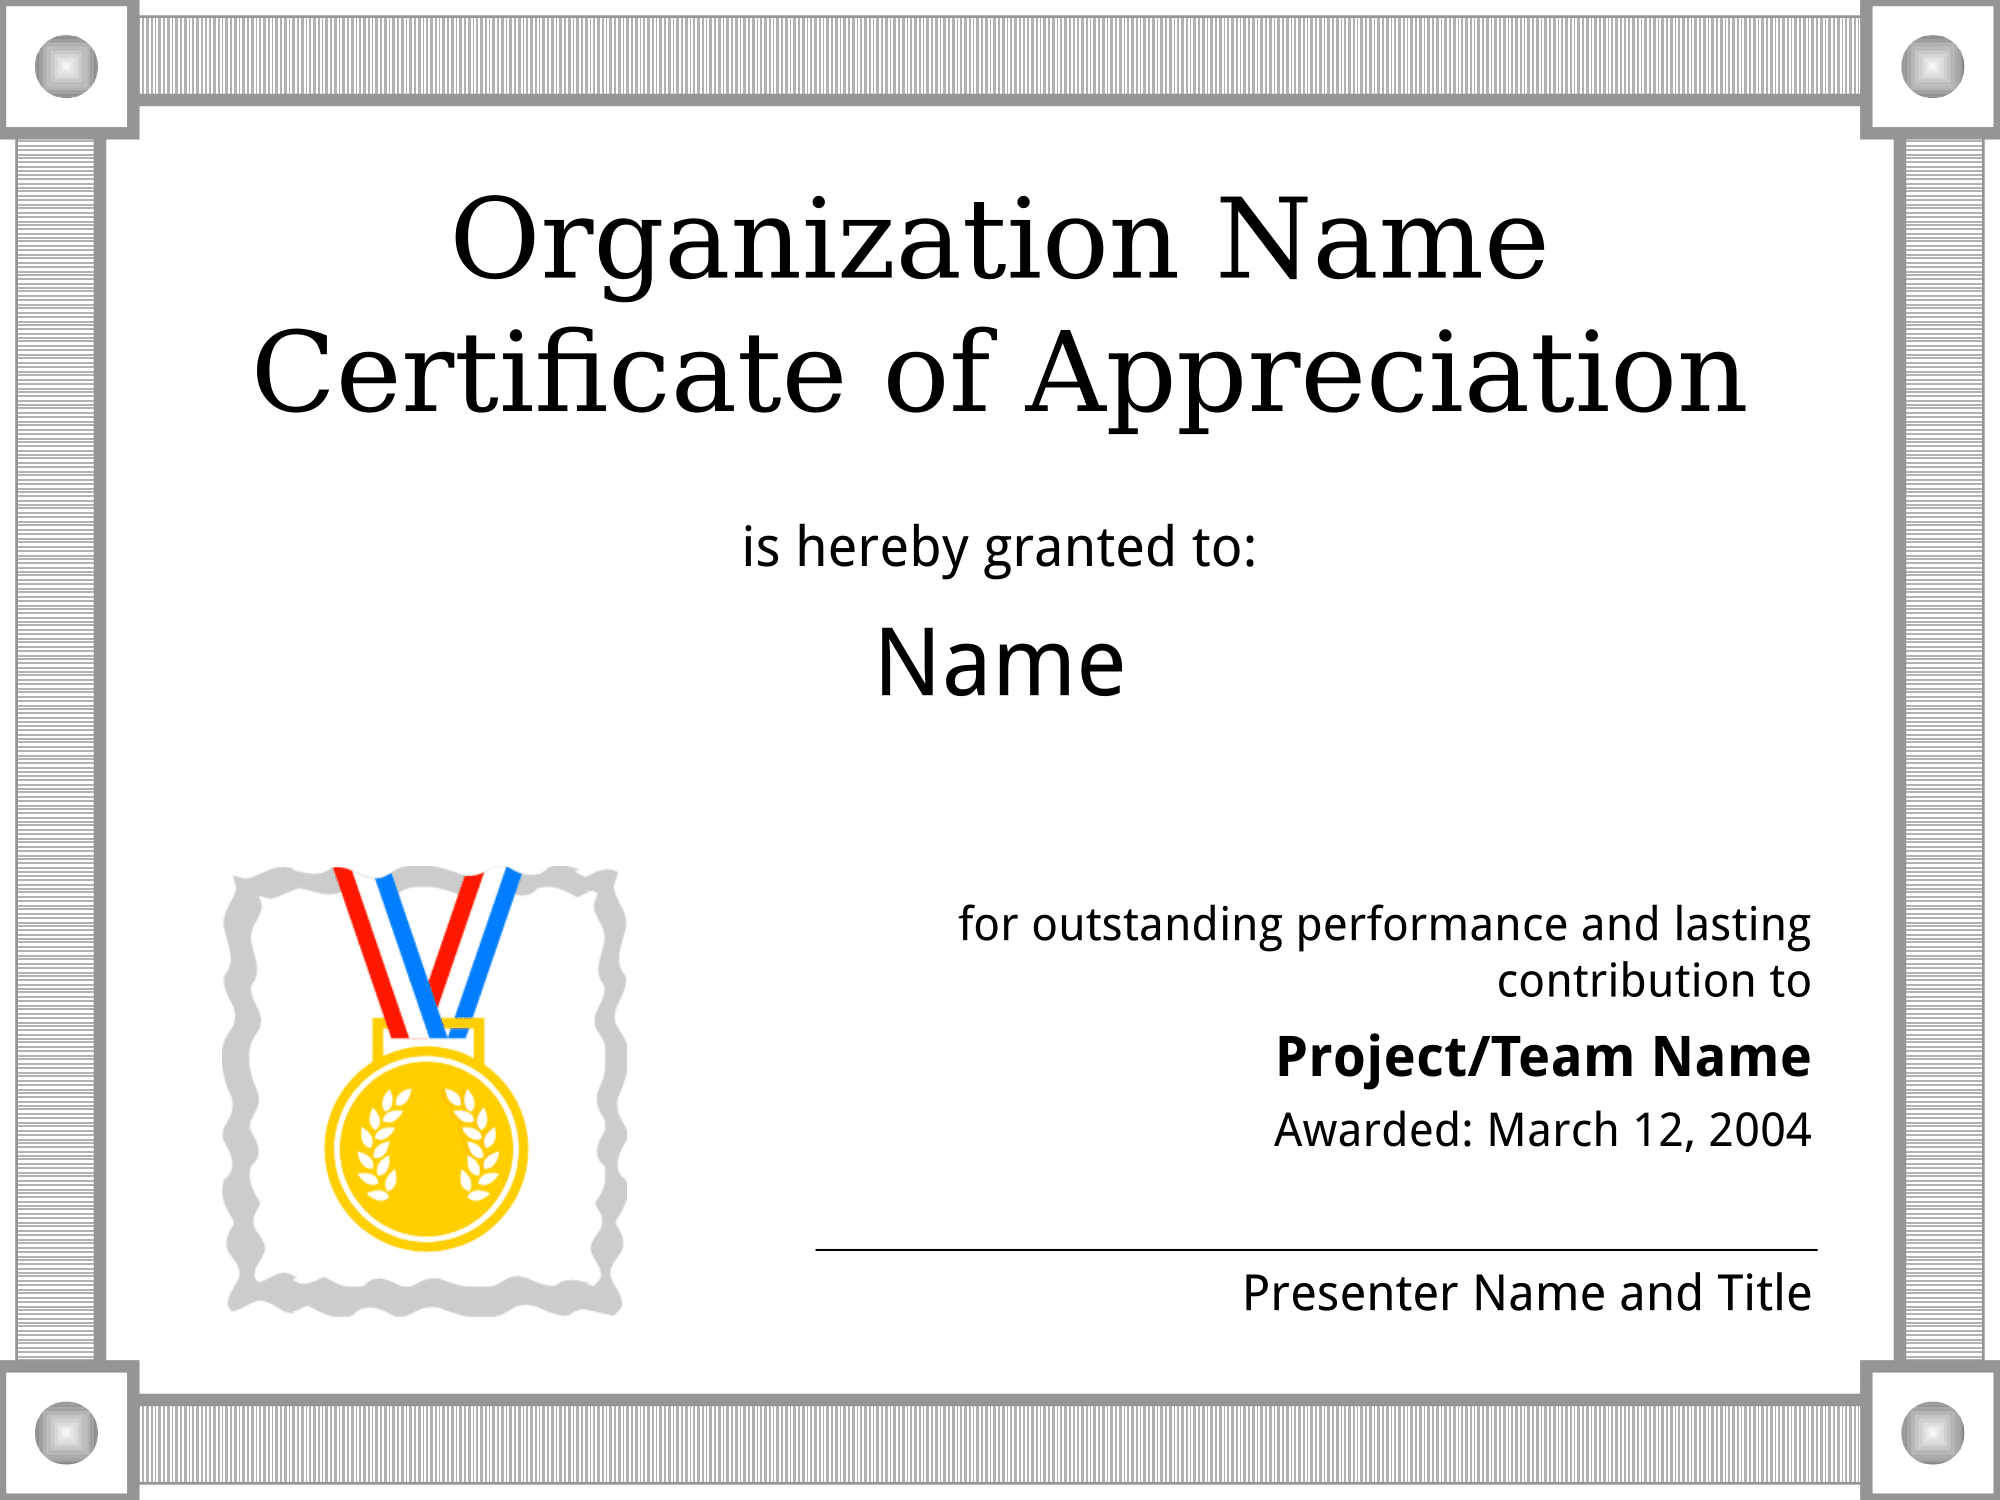 Certificate of appreciation sample template get a free download certificate of appreciation sample template get a free download yadclub Choice Image